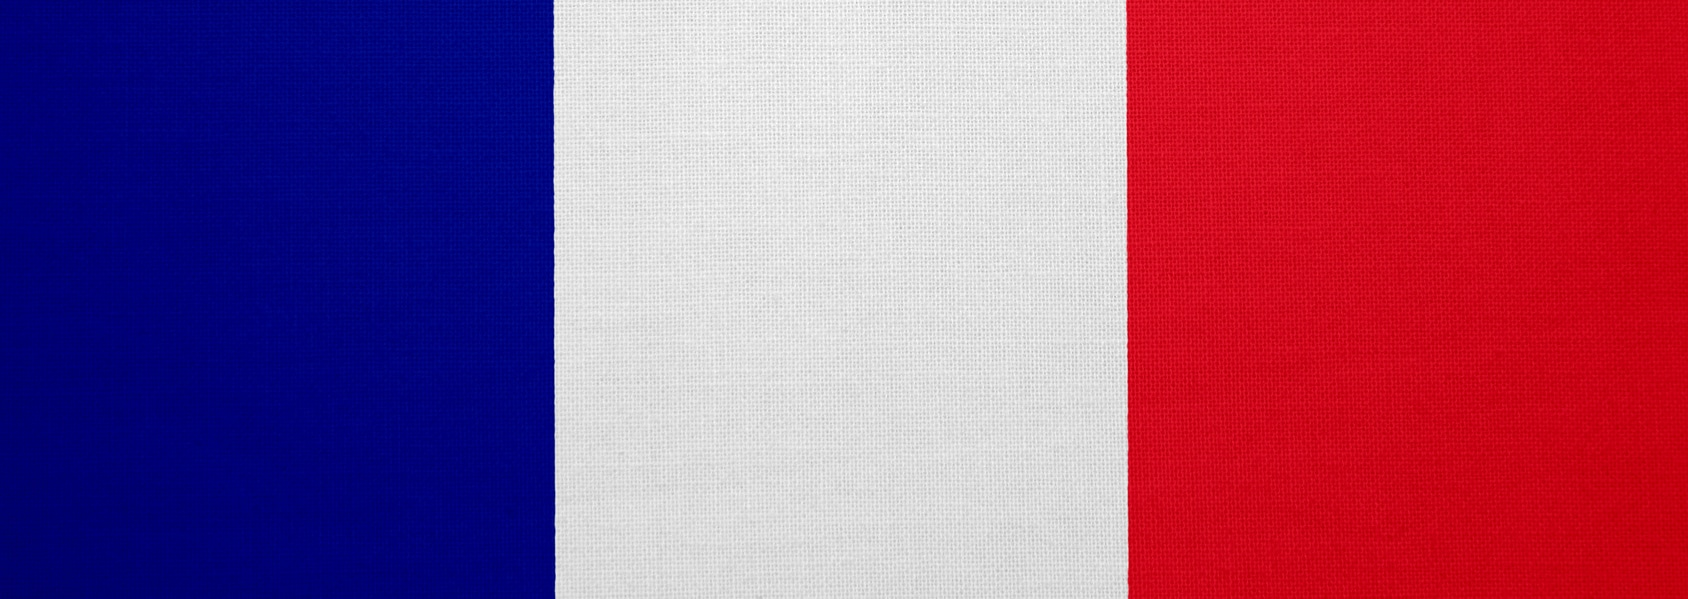 France flag with fabric texture